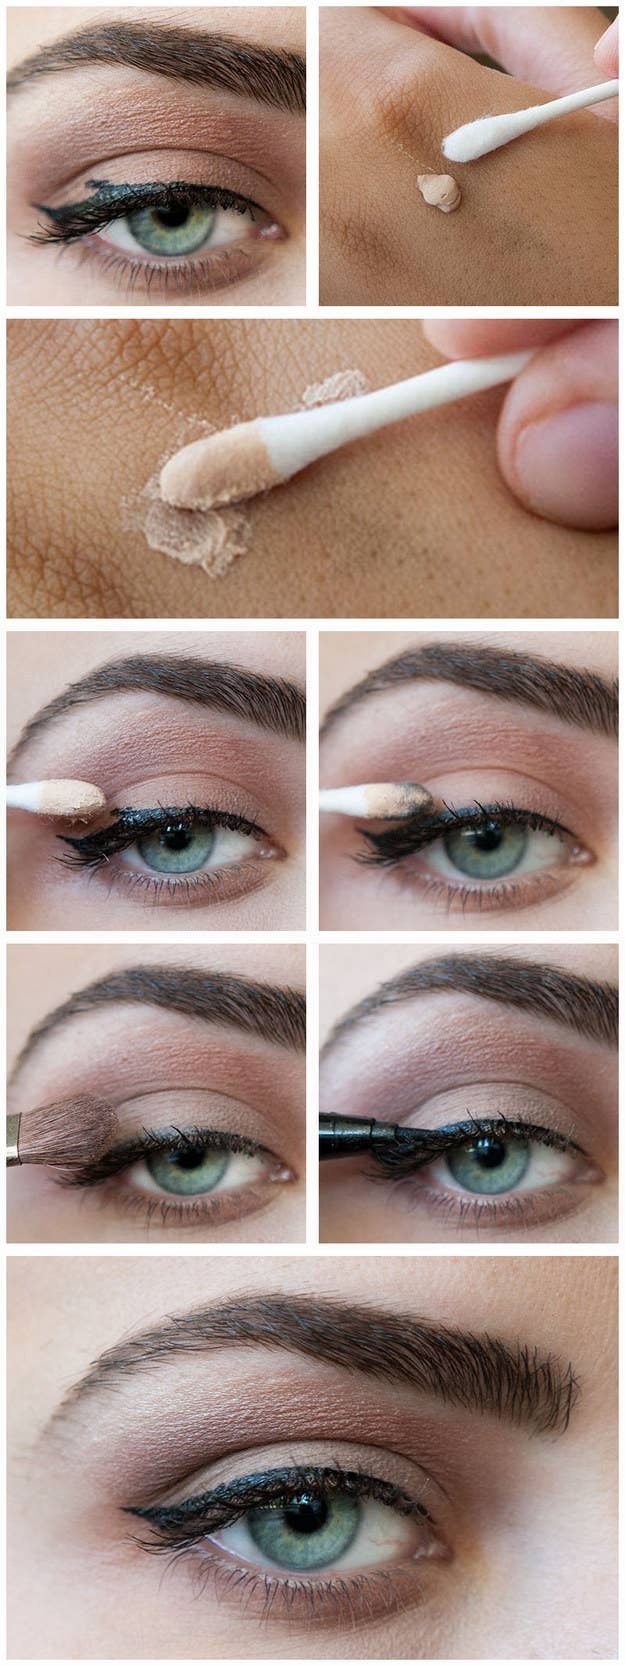 18 useful tips for people who suck at eyeliner get a more detailed version of this tutorial here baditri Image collections